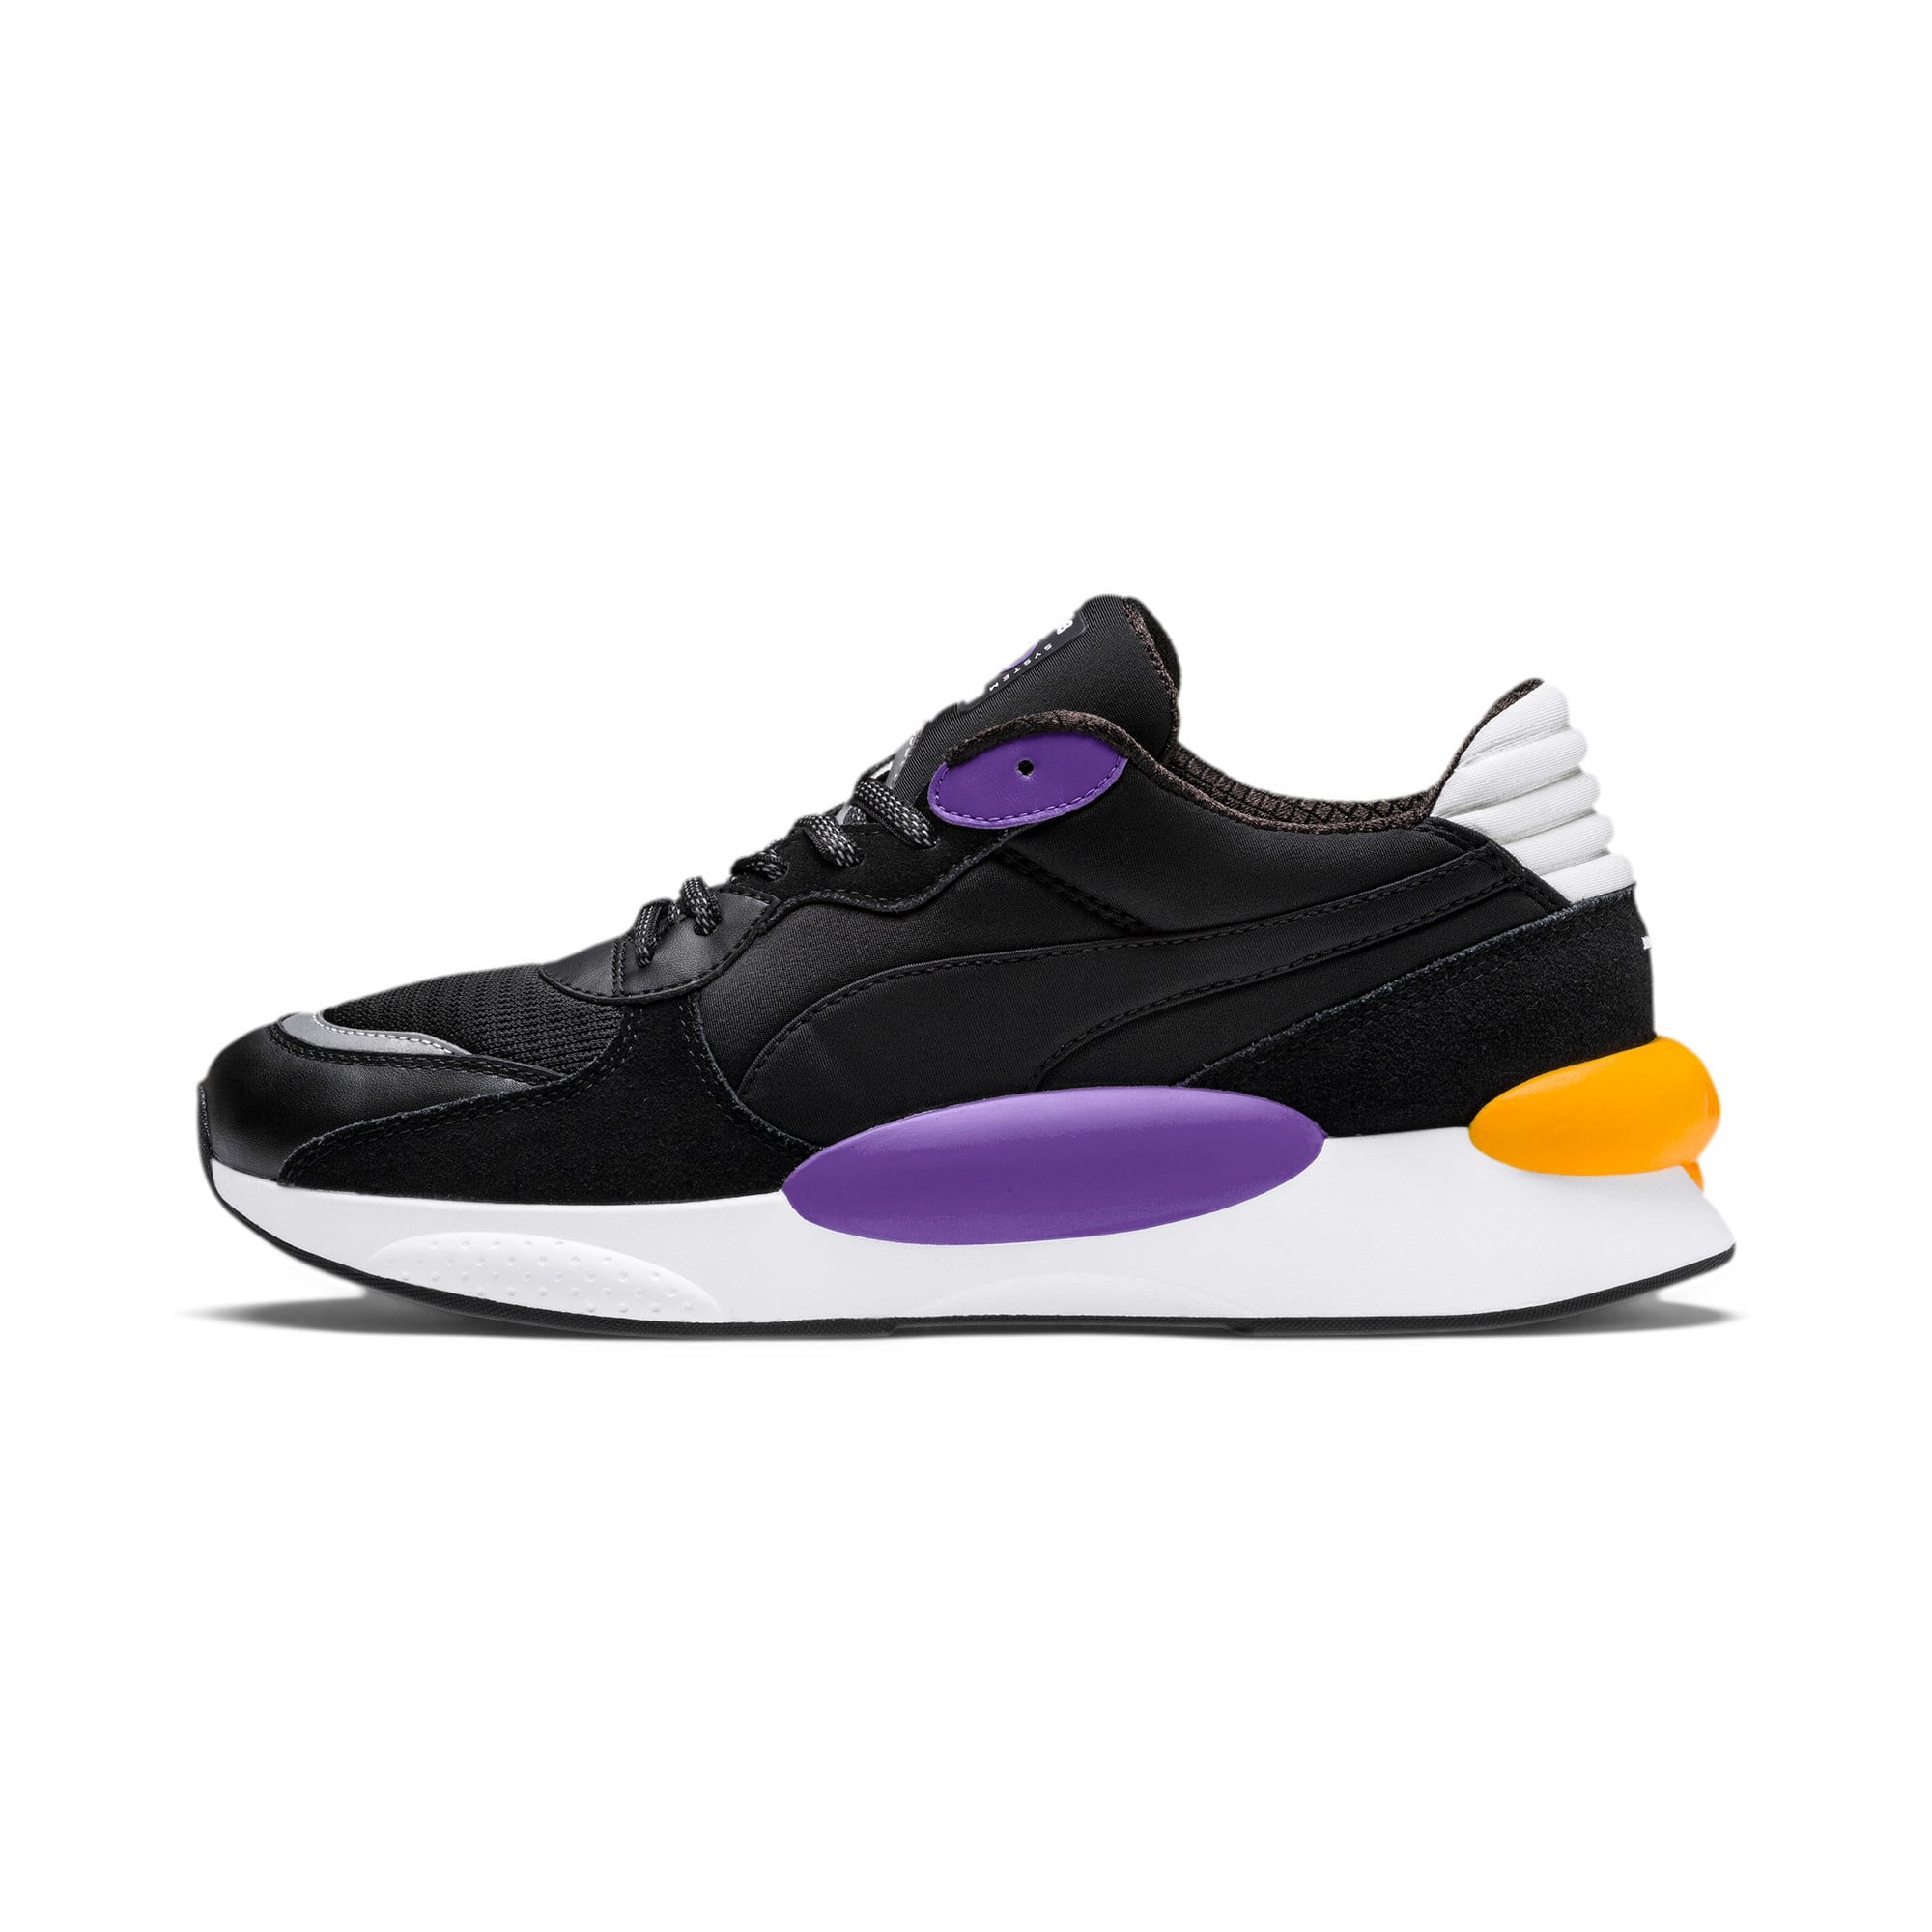 RS 9.8 Gravity Trainers, Puma Black-Purple Glimmer, large